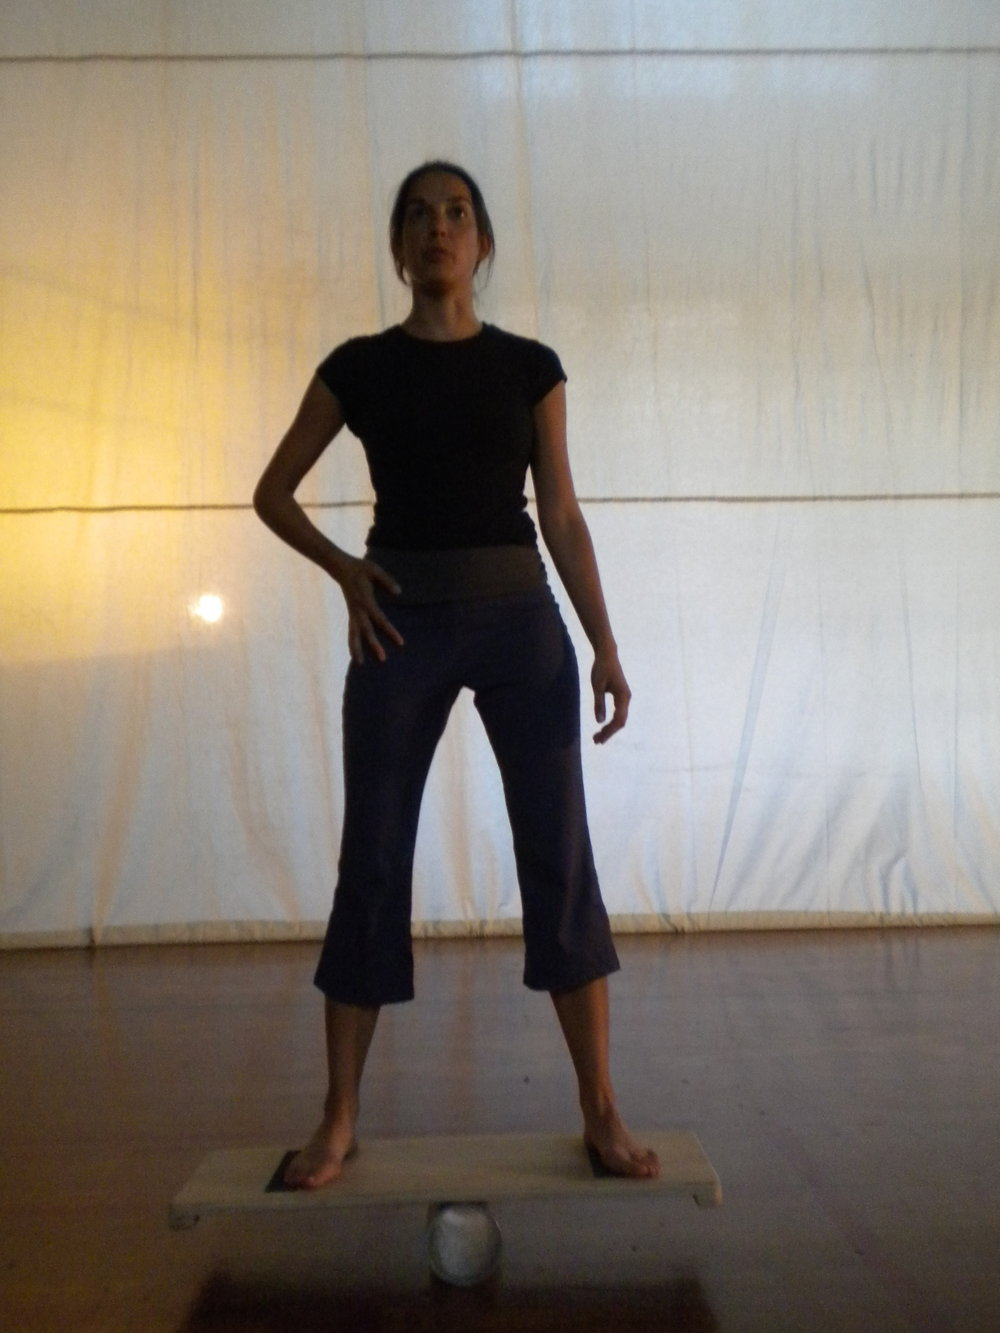 """Performing excerpt from Samuel Beckett's novel """"Molloy"""" while balancing"""